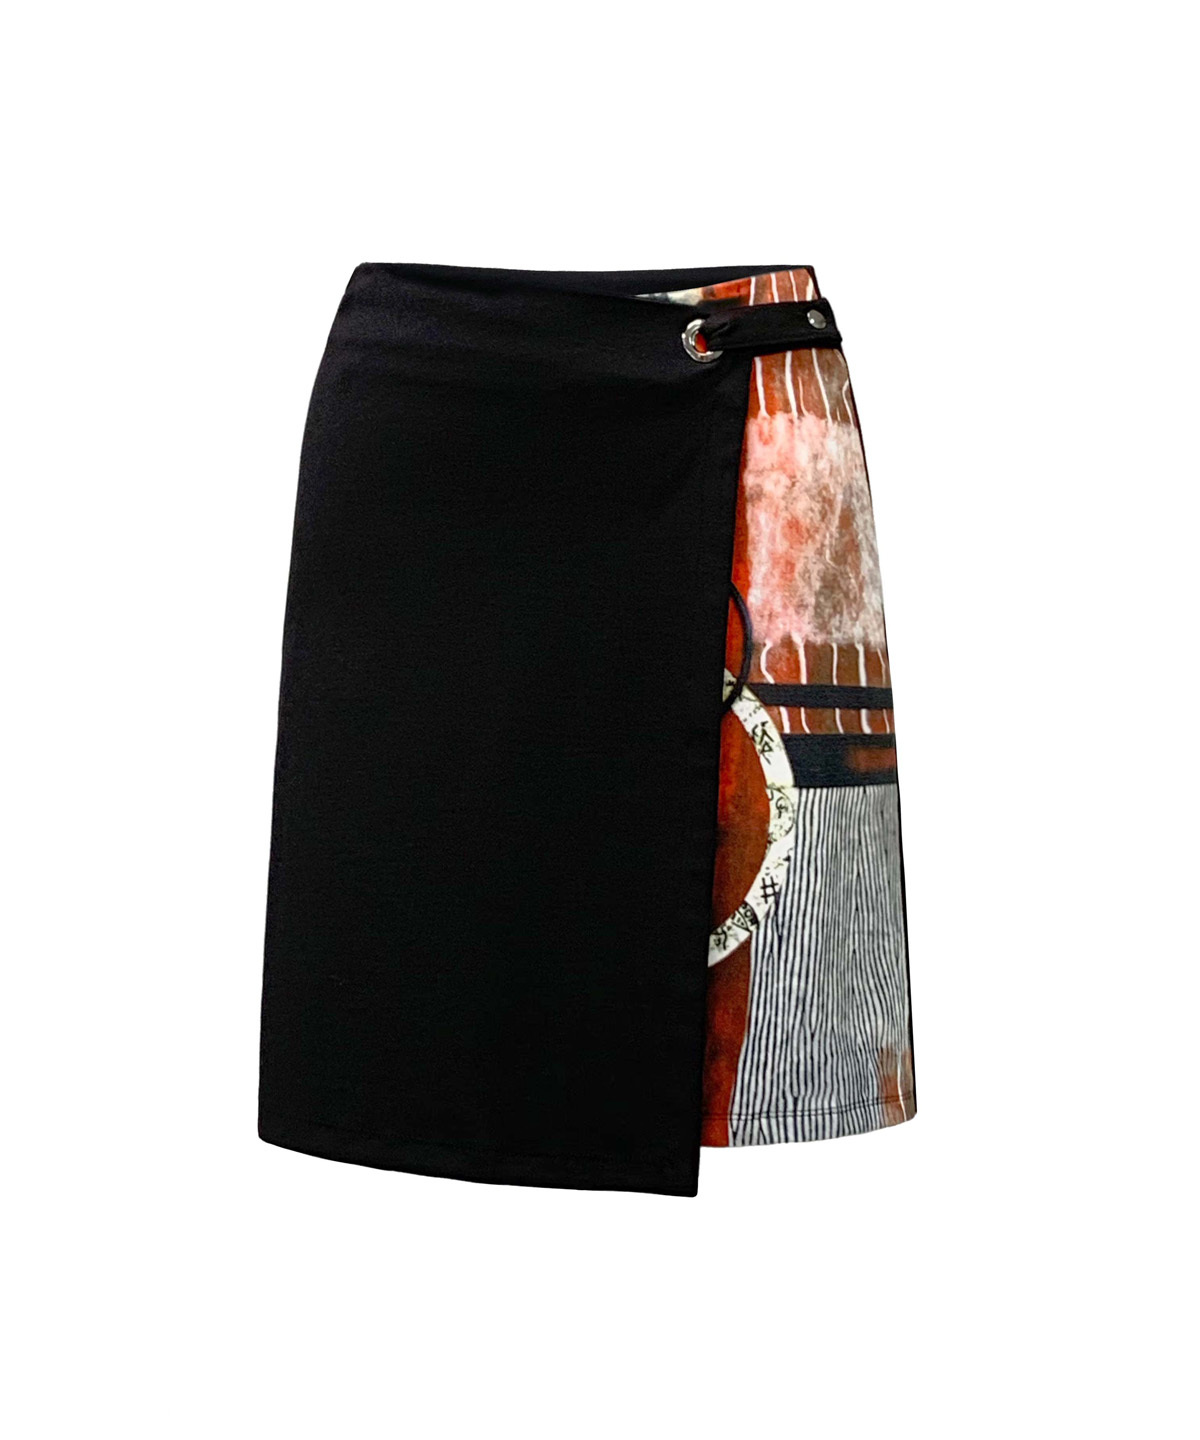 Simply Art Dolcezza: Pretty In Red Extraordinary Abstract Art Crossover Skirt SOLD OUT Dolcezza_SimplyArt_59645